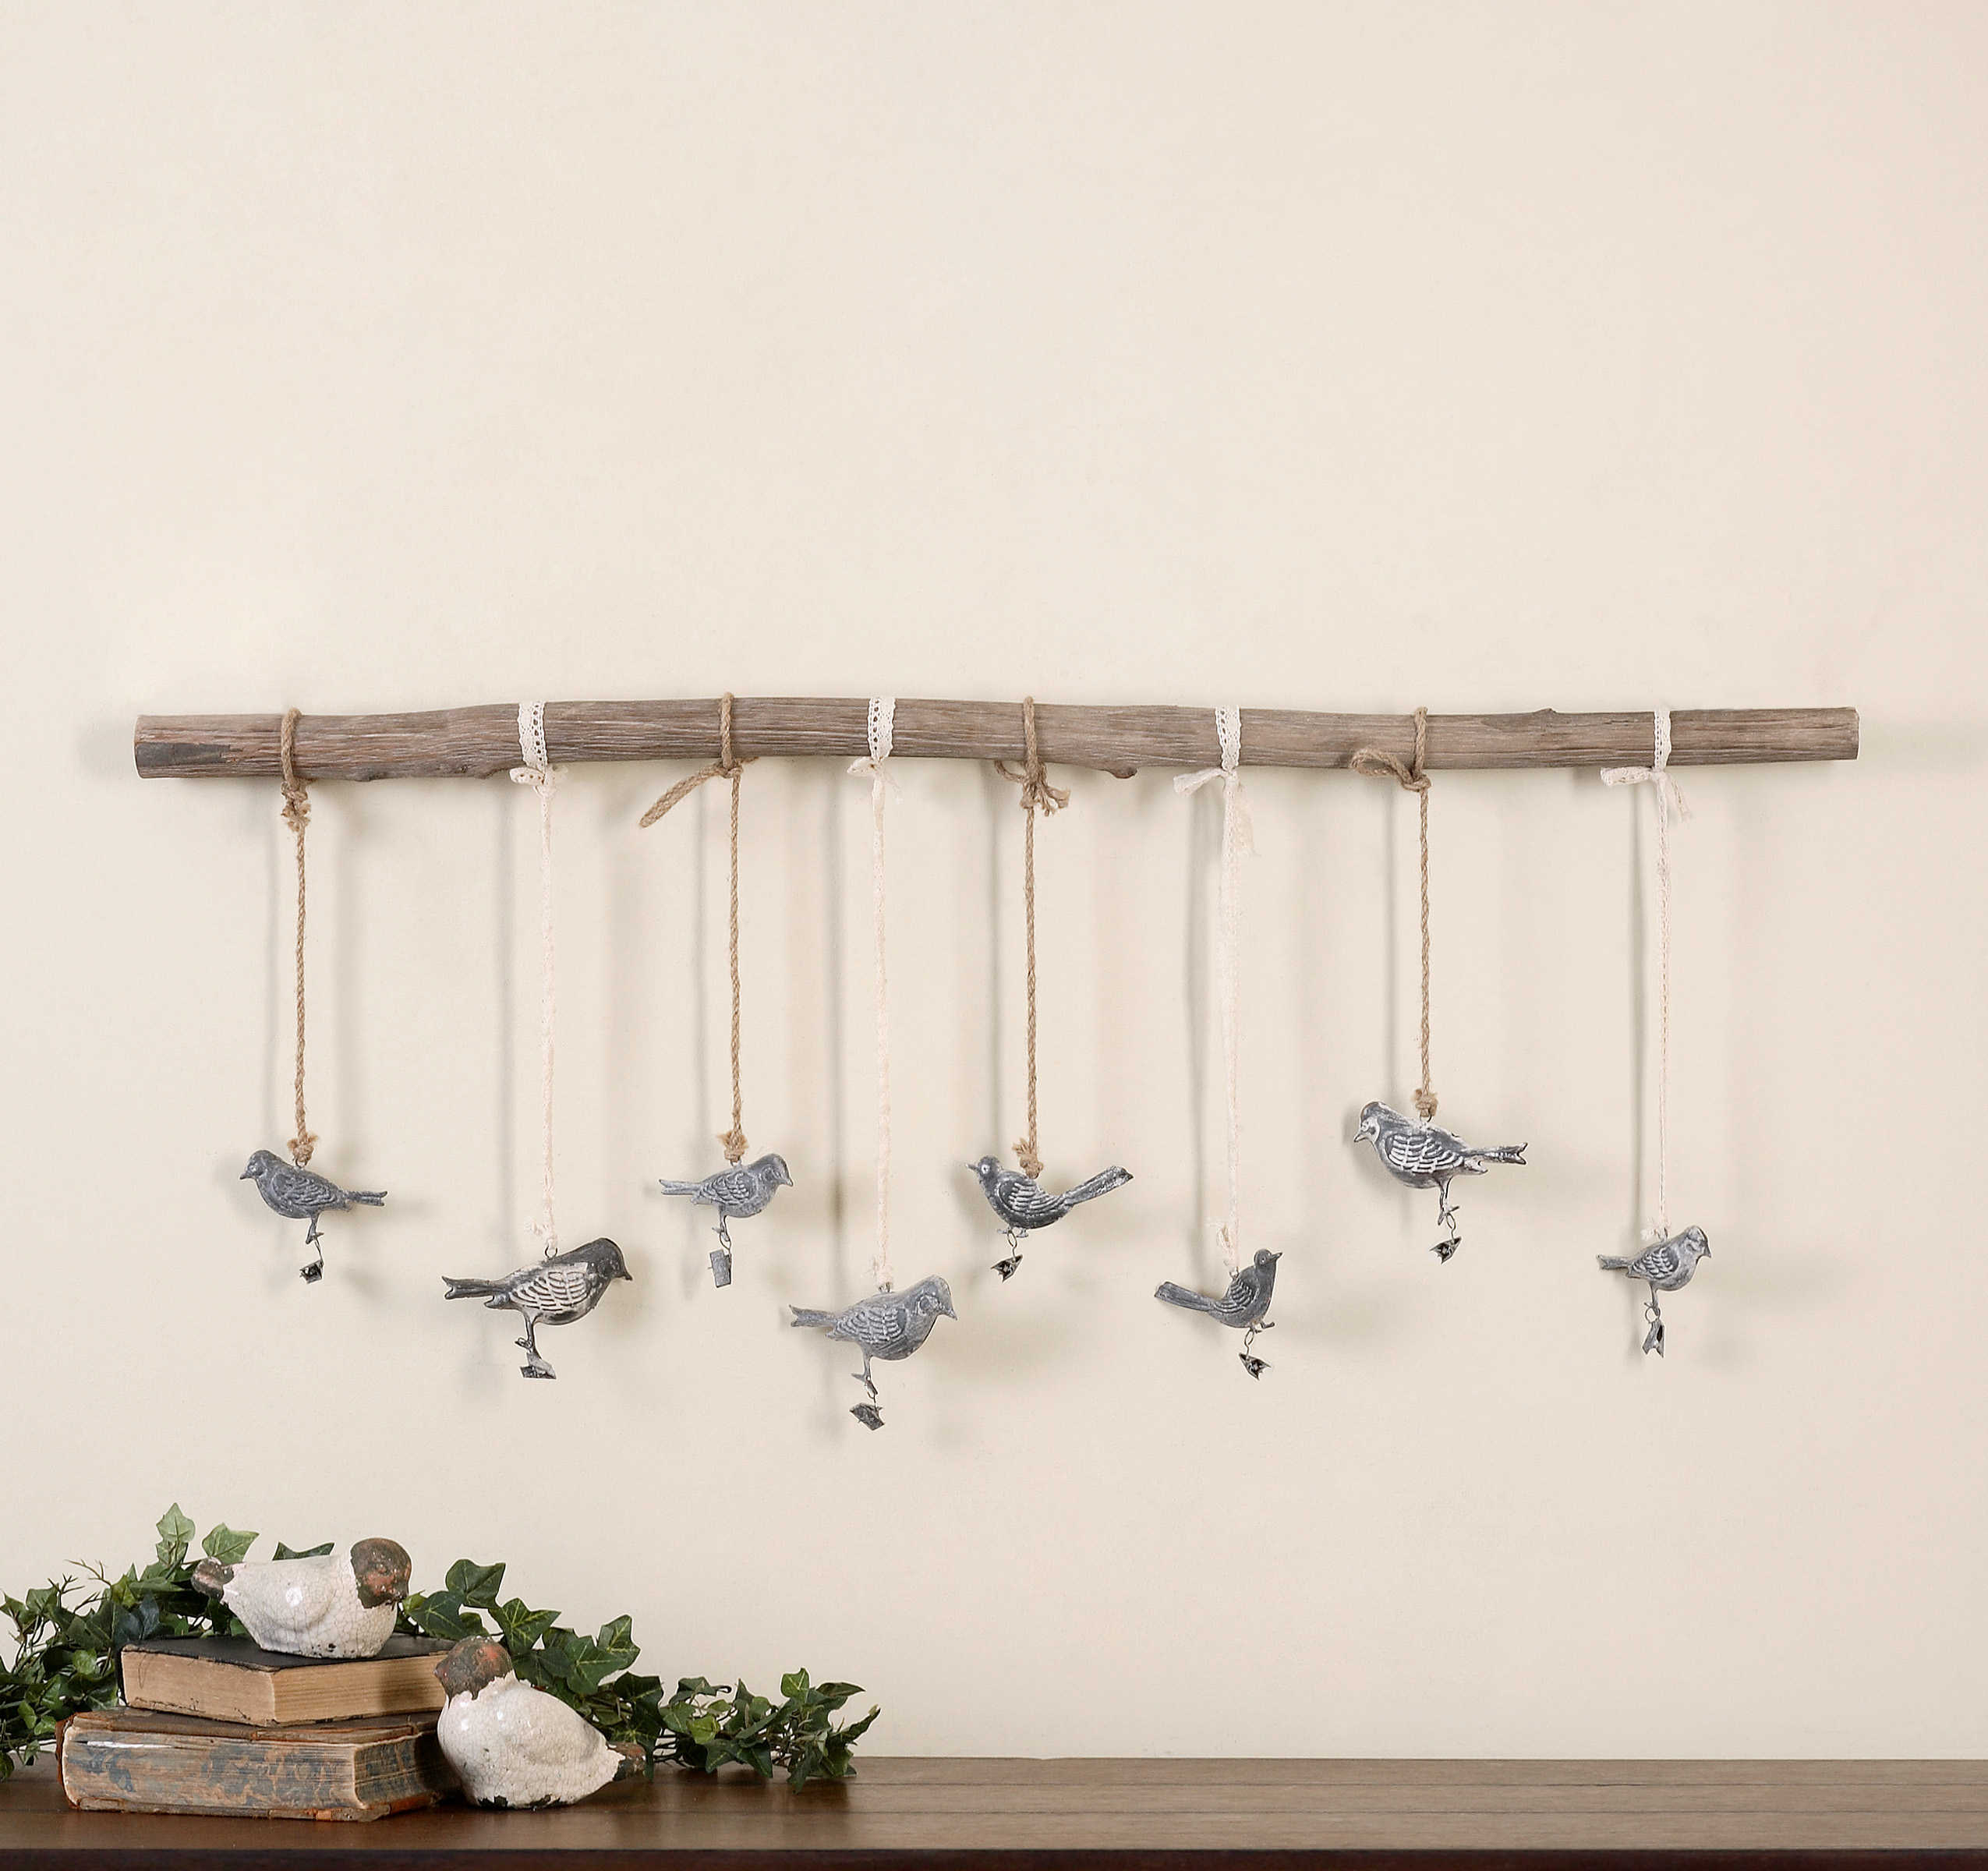 Birds On A Branch Wall Decor Throughout 2020 Uttermost Birds On A Branch Wall Art (Gallery 7 of 20)